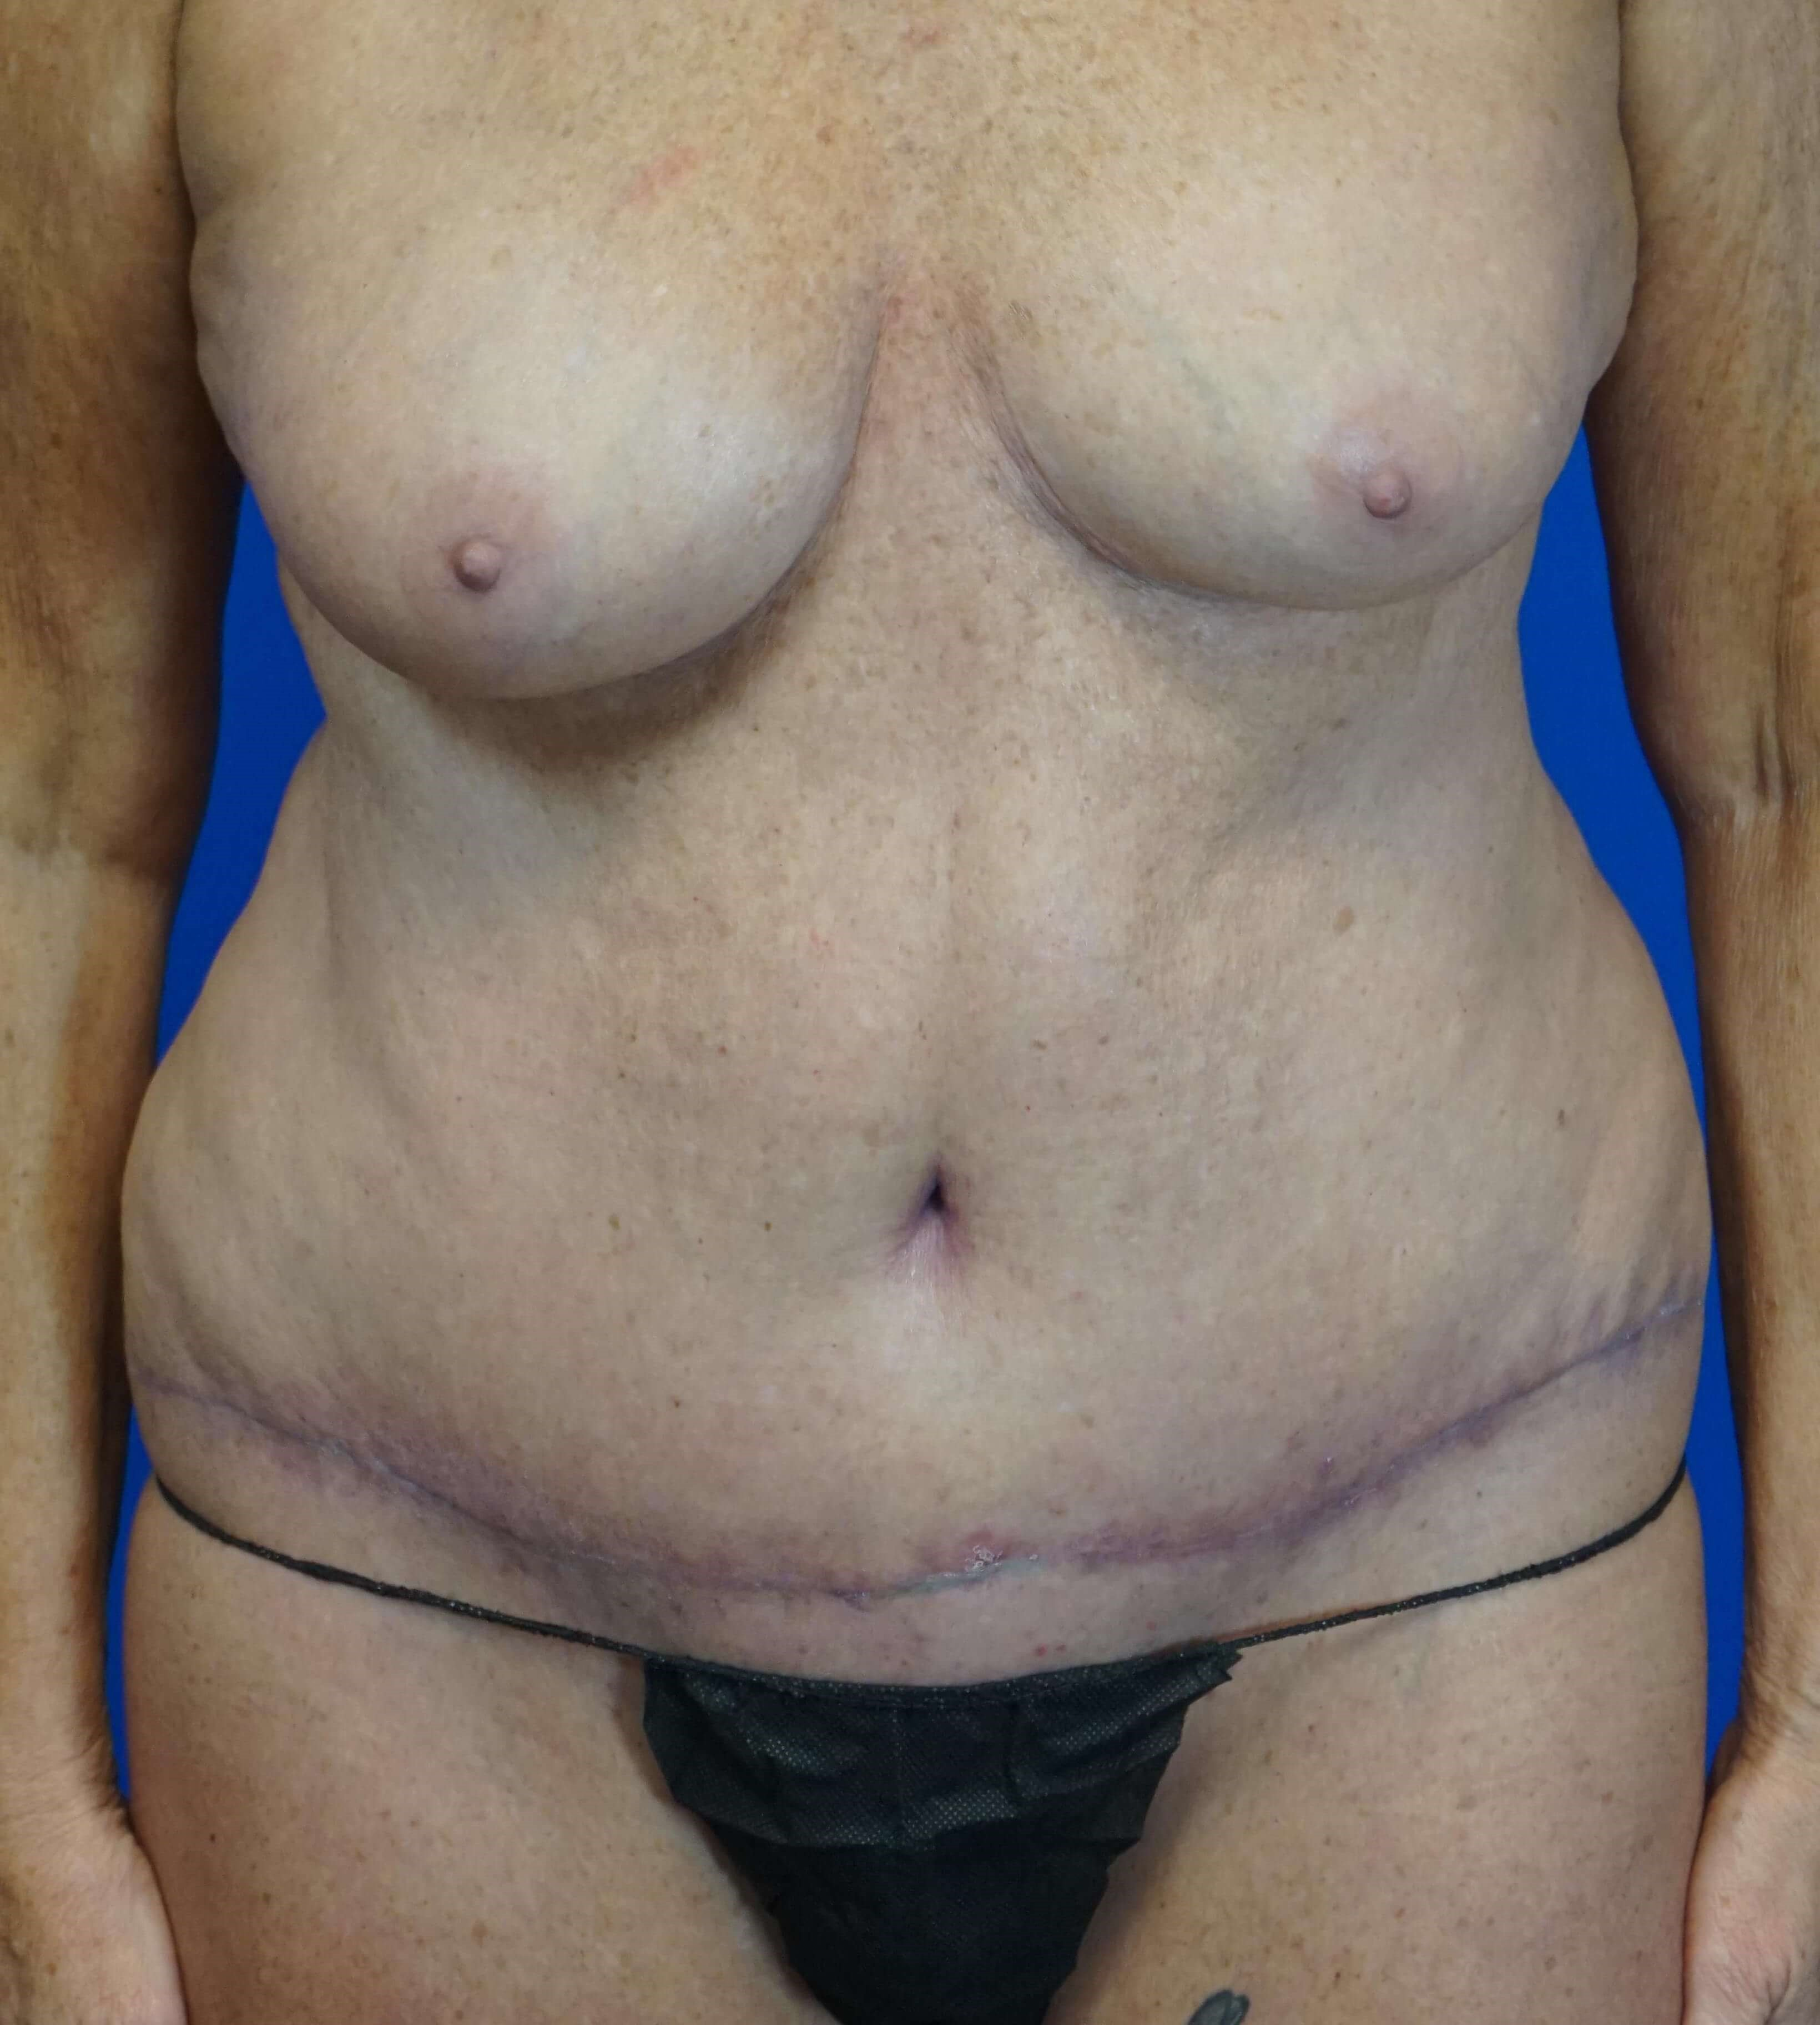 Tummy Tuck in 64 year-old 6 weeks postop